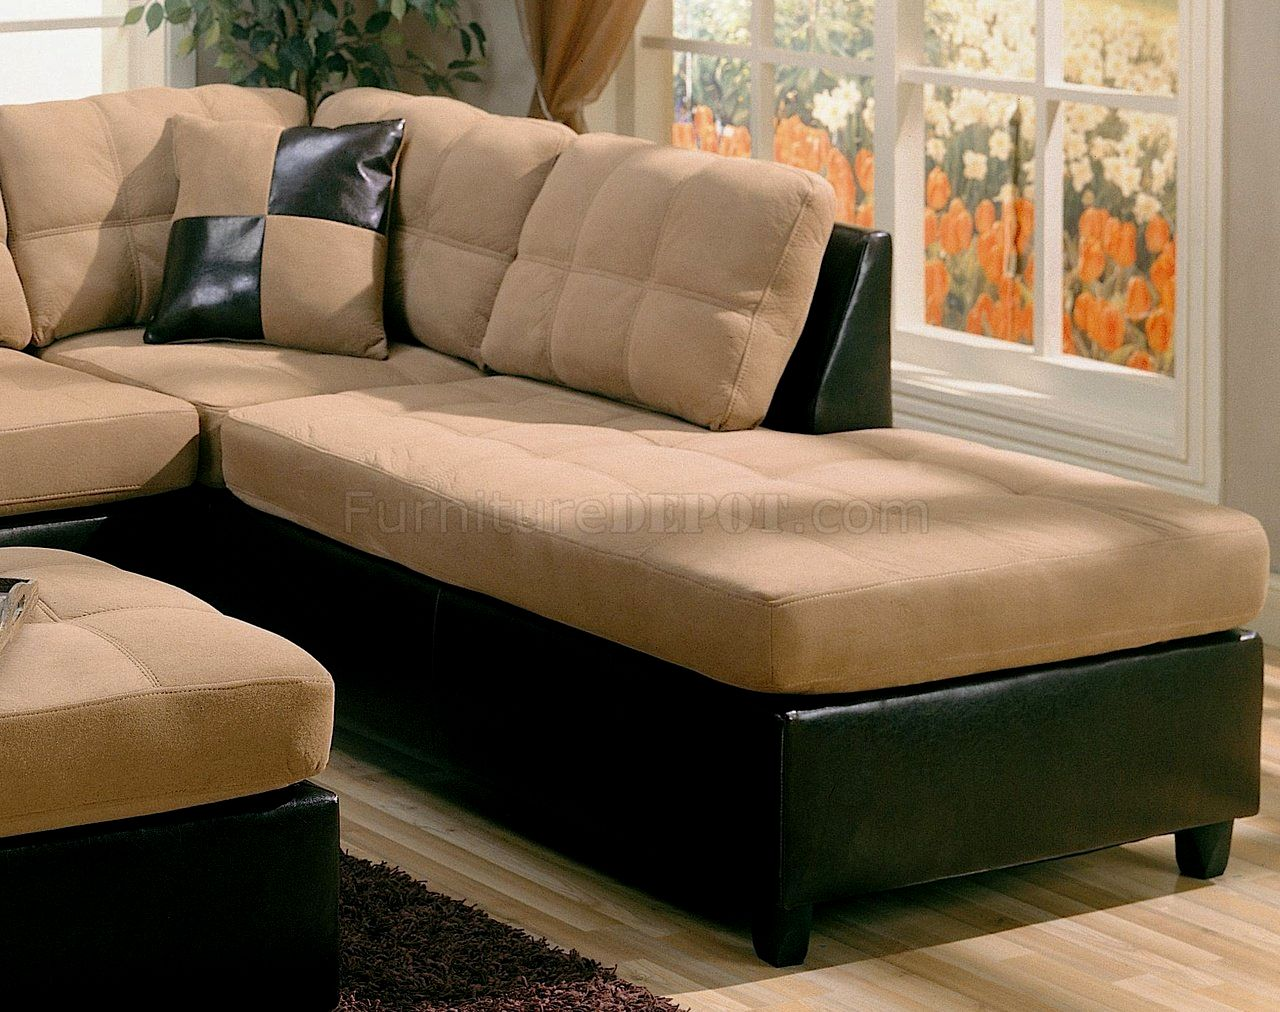 excellent camelback leather sofa decoration-Fresh Camelback Leather sofa Decoration